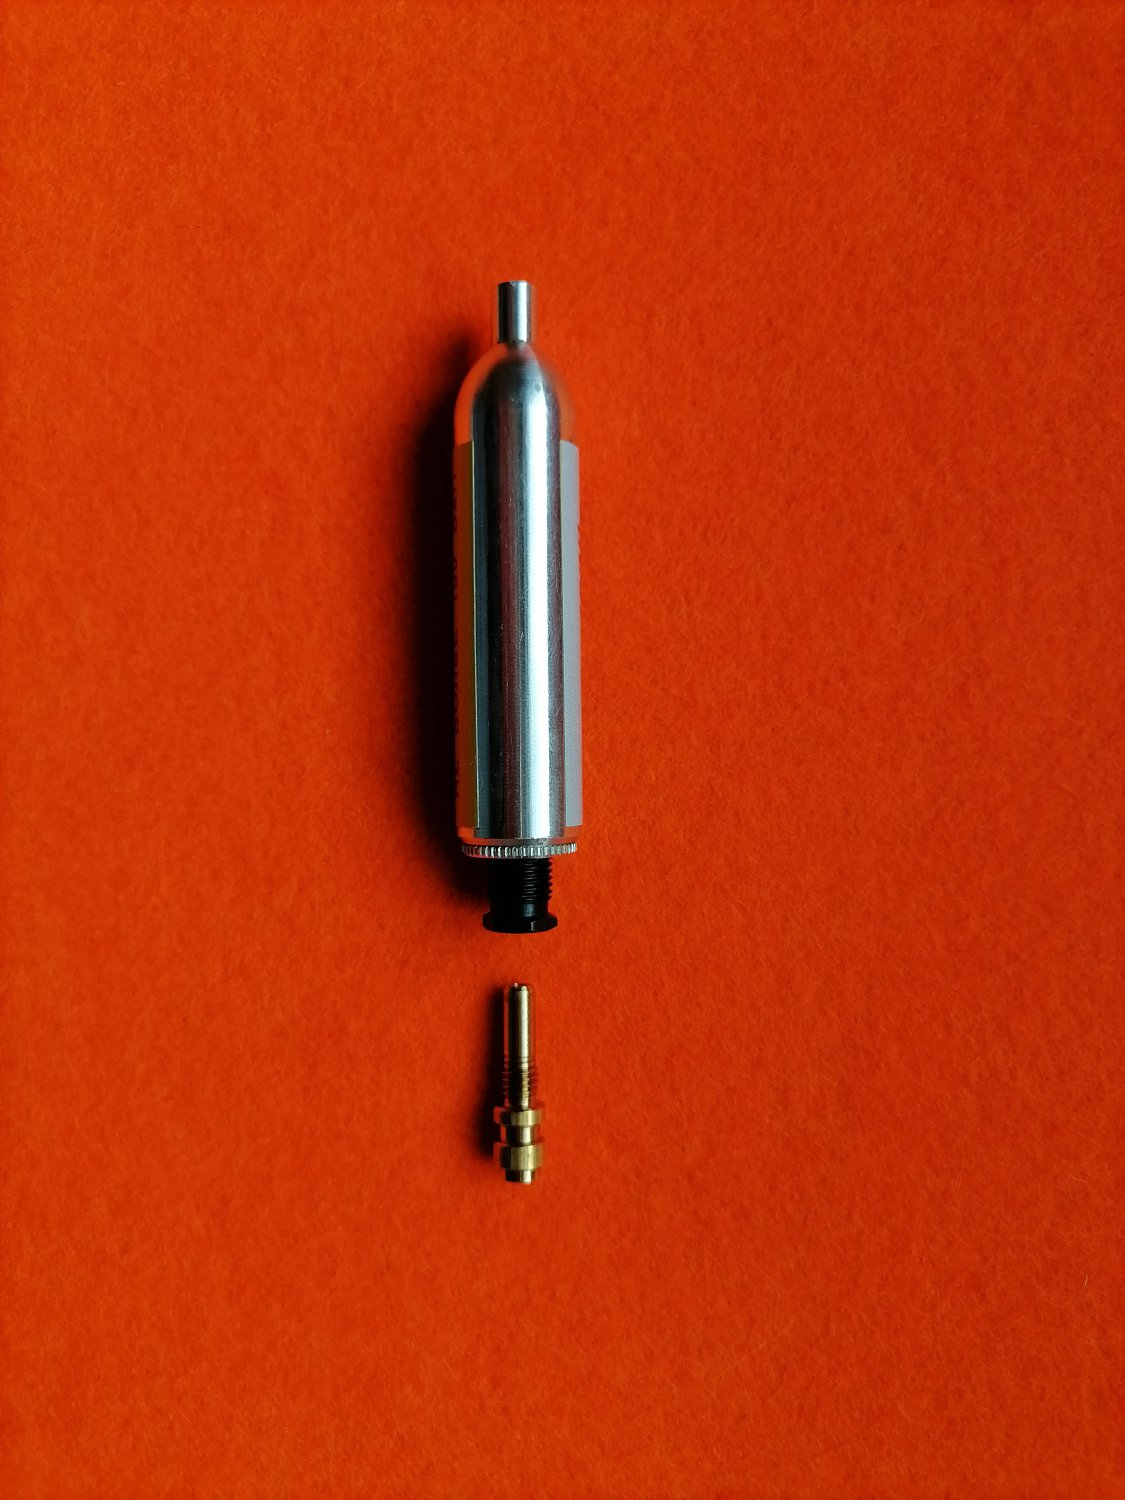 Upgraded cylinder MP-654K, MP-651K refueled magazine with pump nozzle, tuning part is made to order.